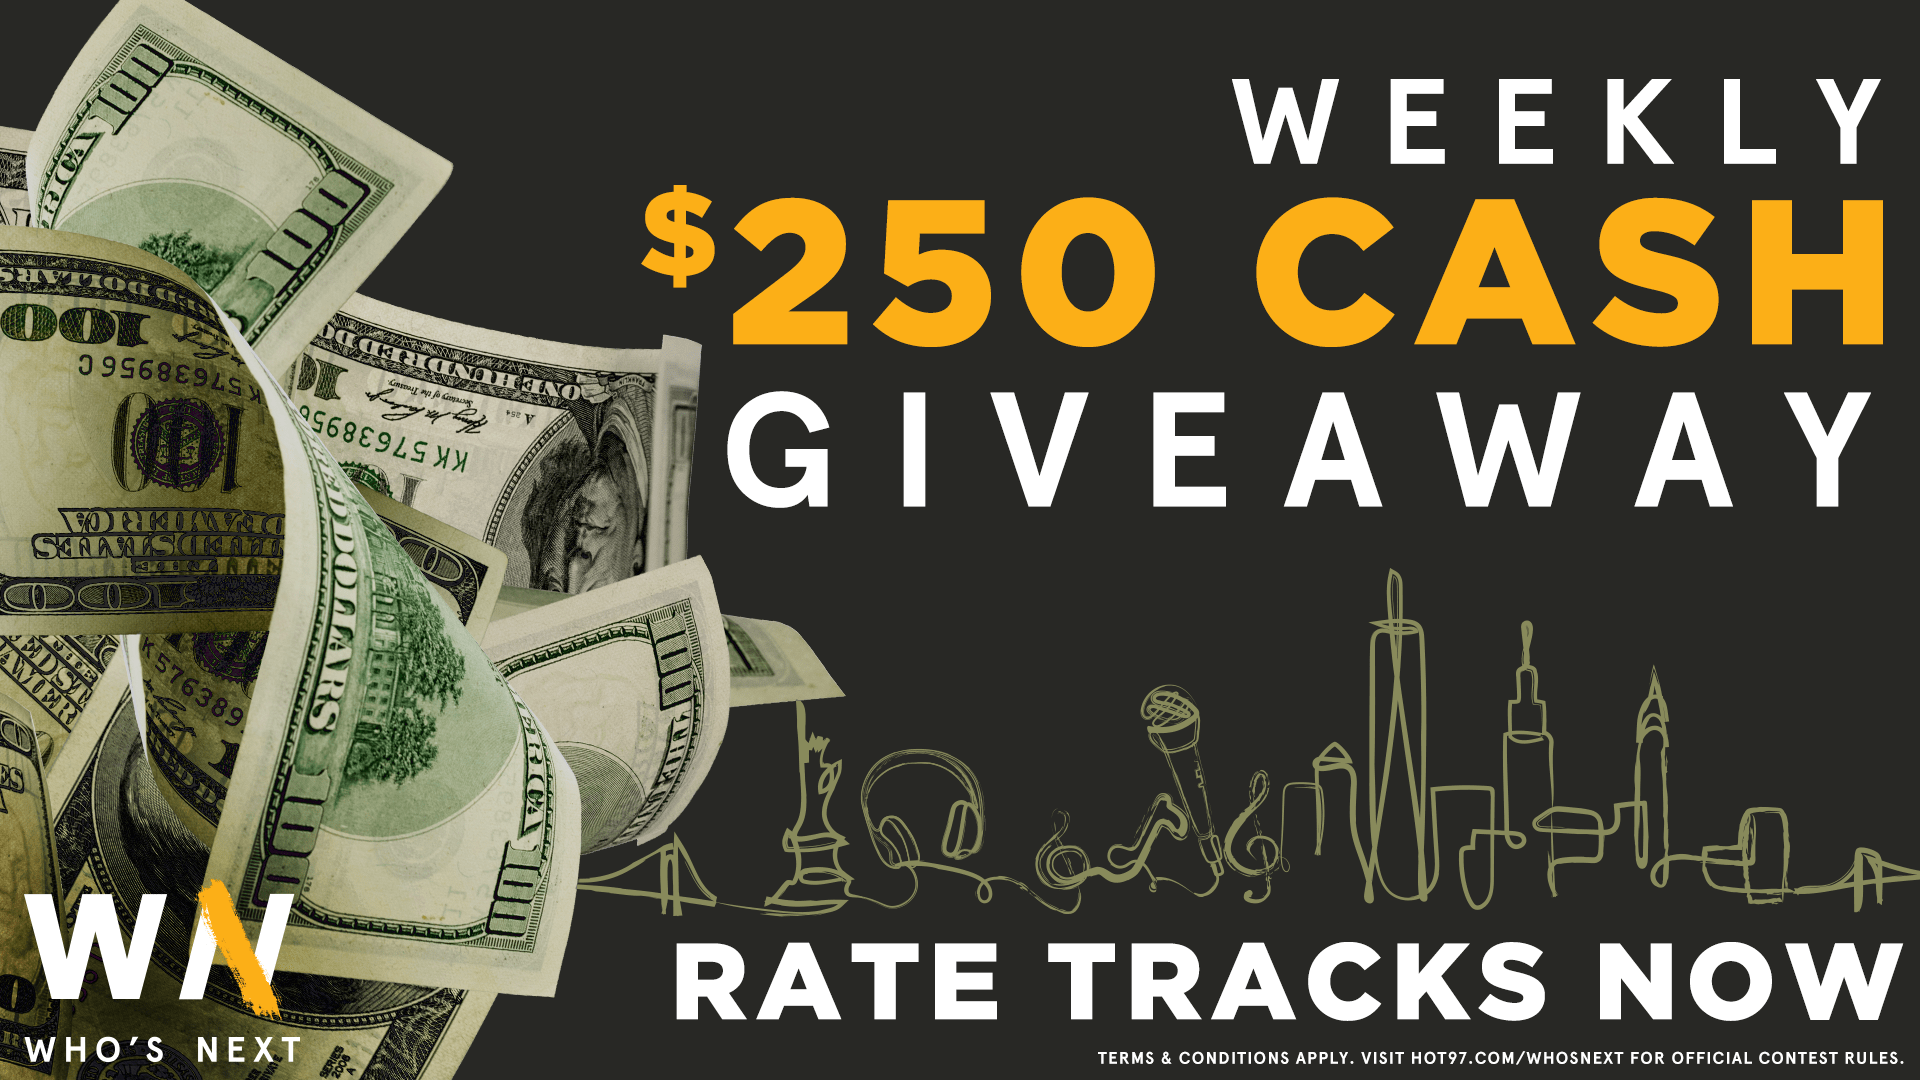 Who's Next Curator Prizing $250 Cash Giveaway